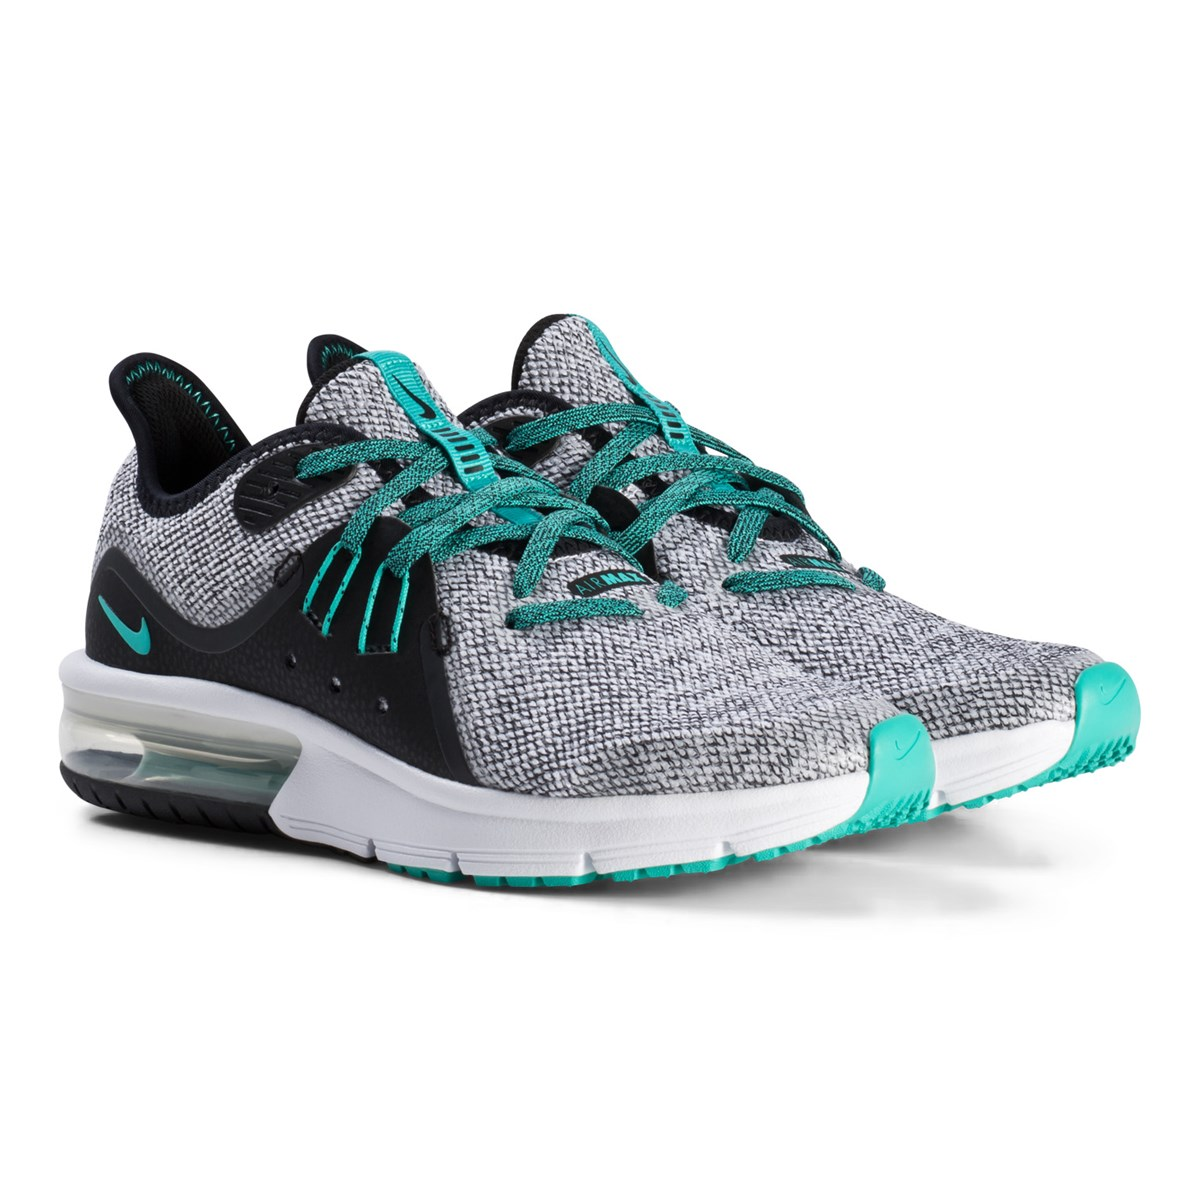 NIKE - Gray and Green Air Max Sequent 3